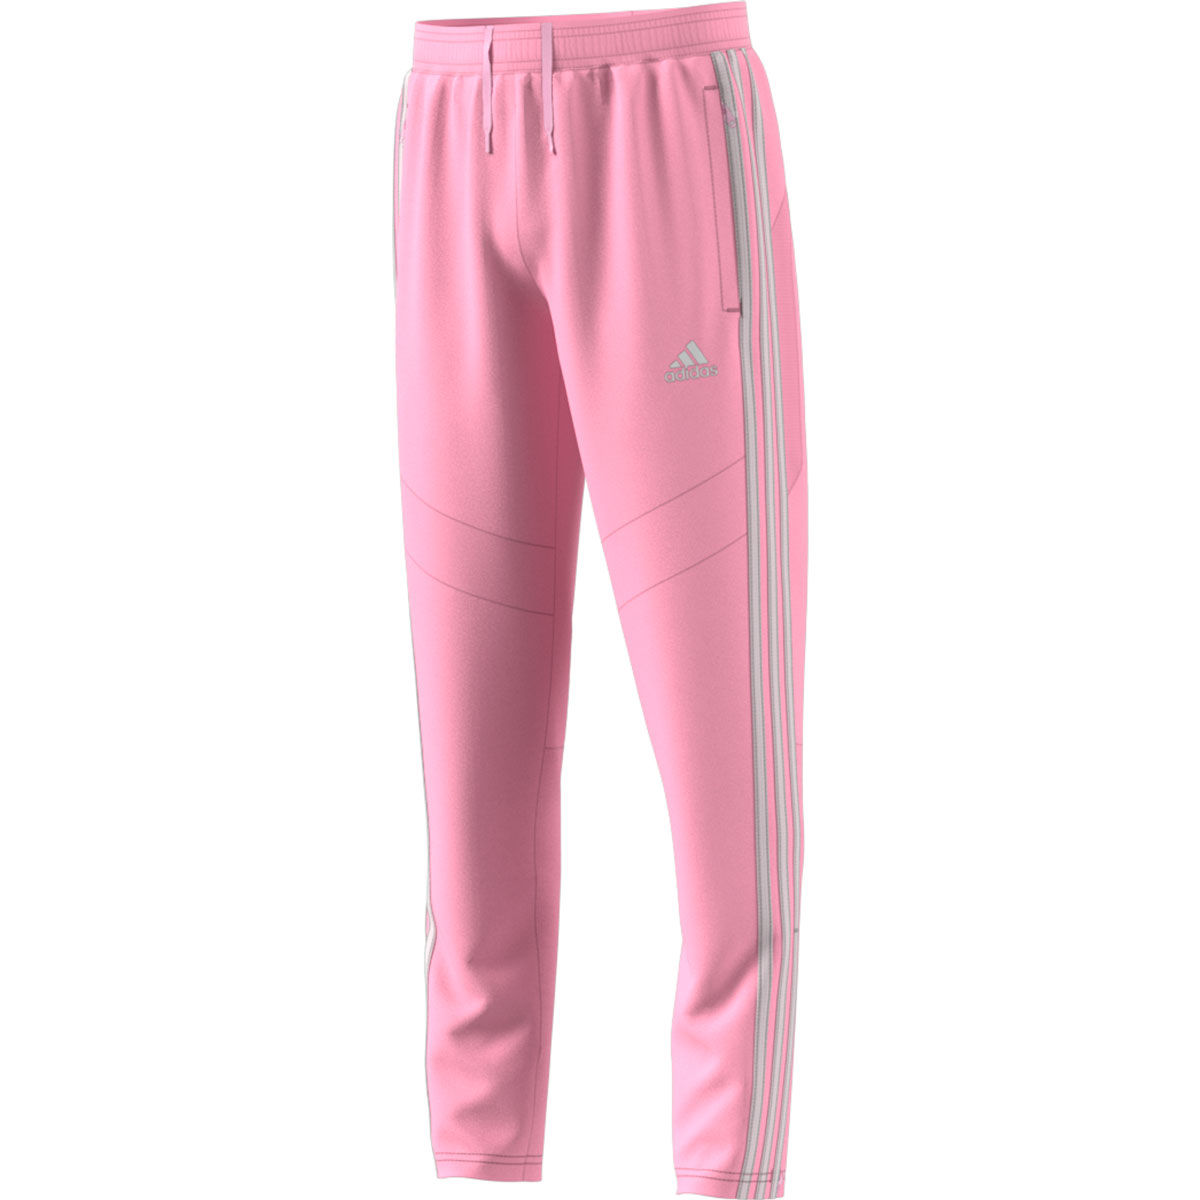 adidas Tiro 19 Youth Training Pants